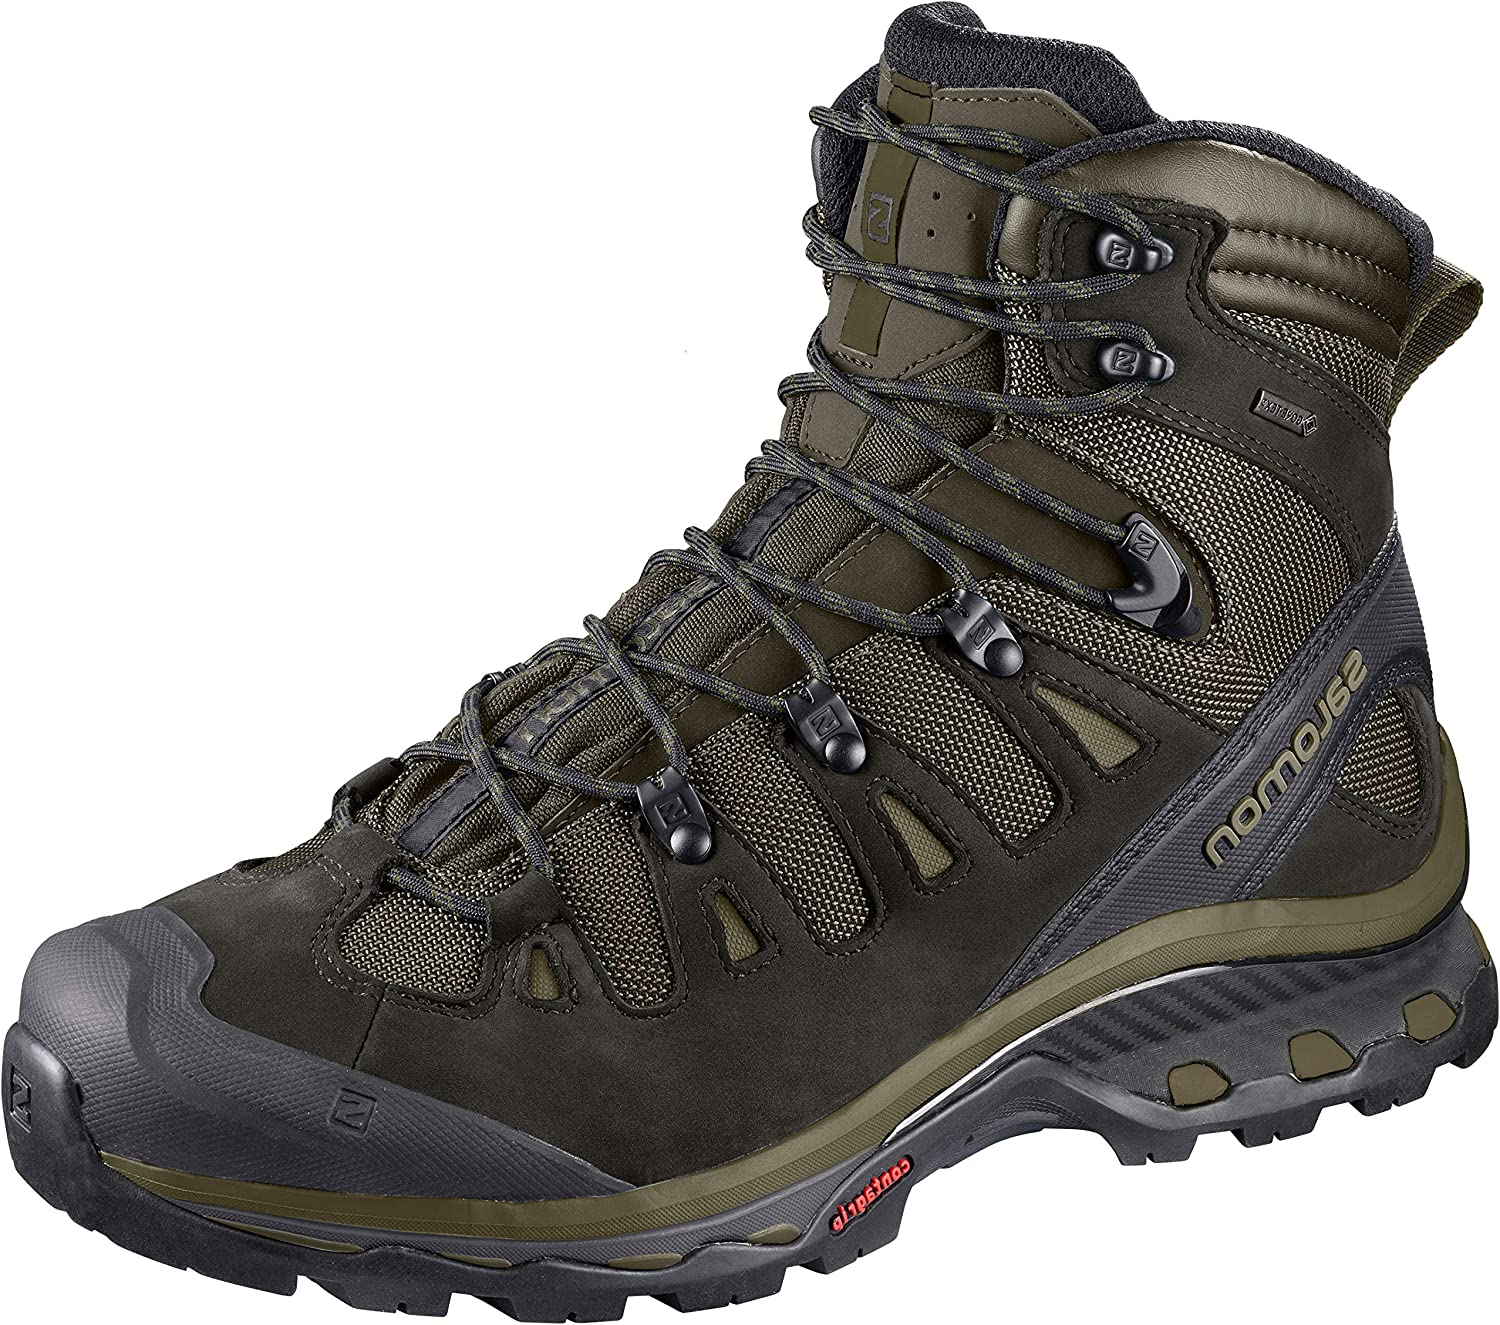 Taccuino ufficiale autore  Amazon.com | Salomon Men's Quest 4d 3 GTX Backpacking | Backpacking Boots